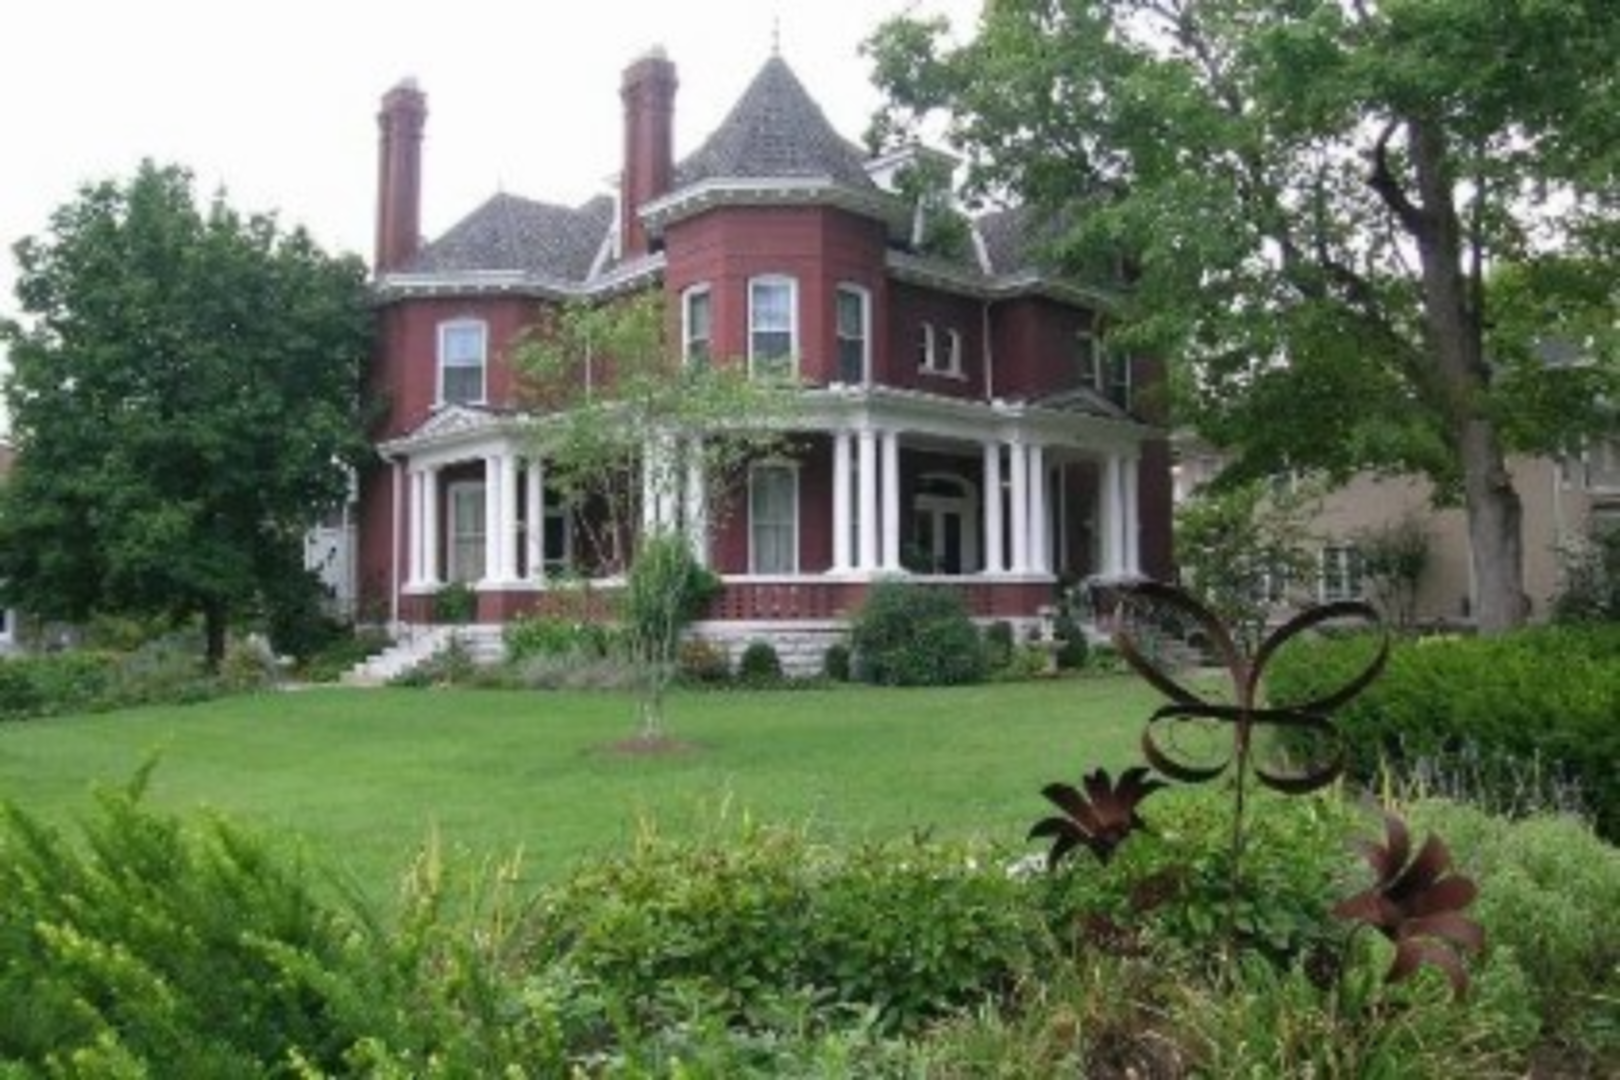 A large lawn in front of a house at Byrn-Roberts Inn.